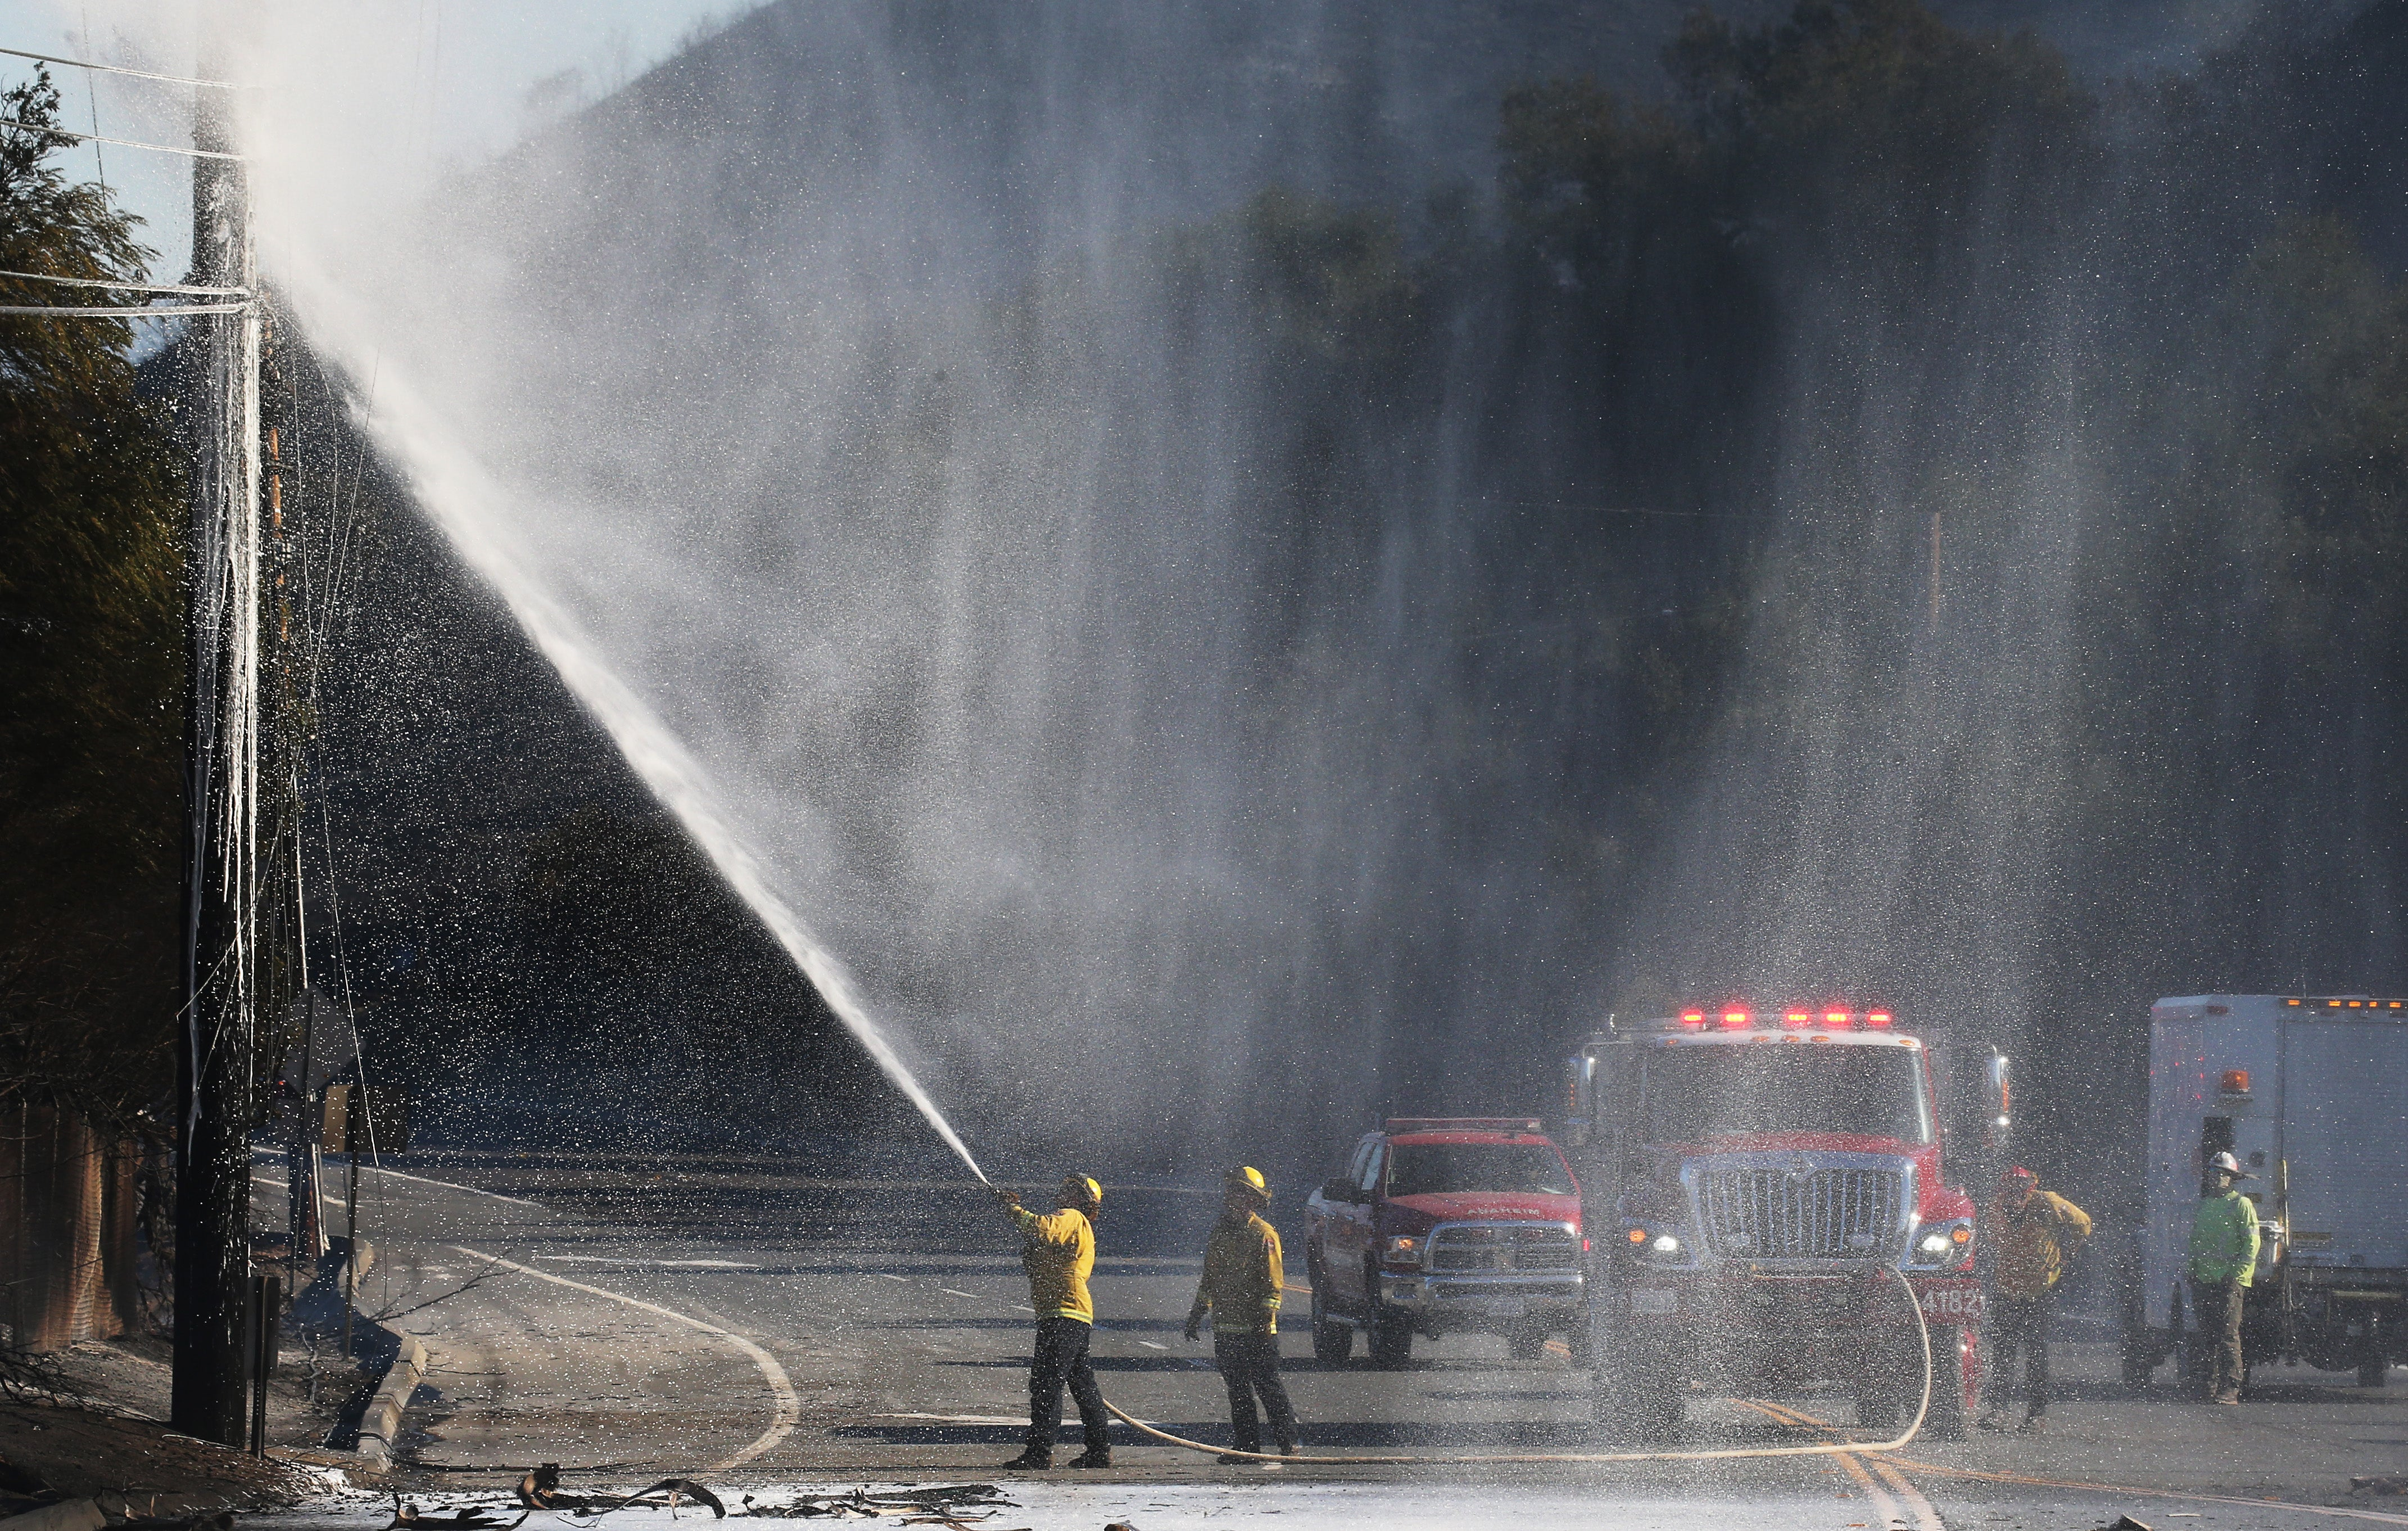 Firefighters Gain Upper Hand on Southern California Wildfire Fueled by Fierce Santa Ana Winds | The Weather Channel - Articles from The Weather Channel | weather.com